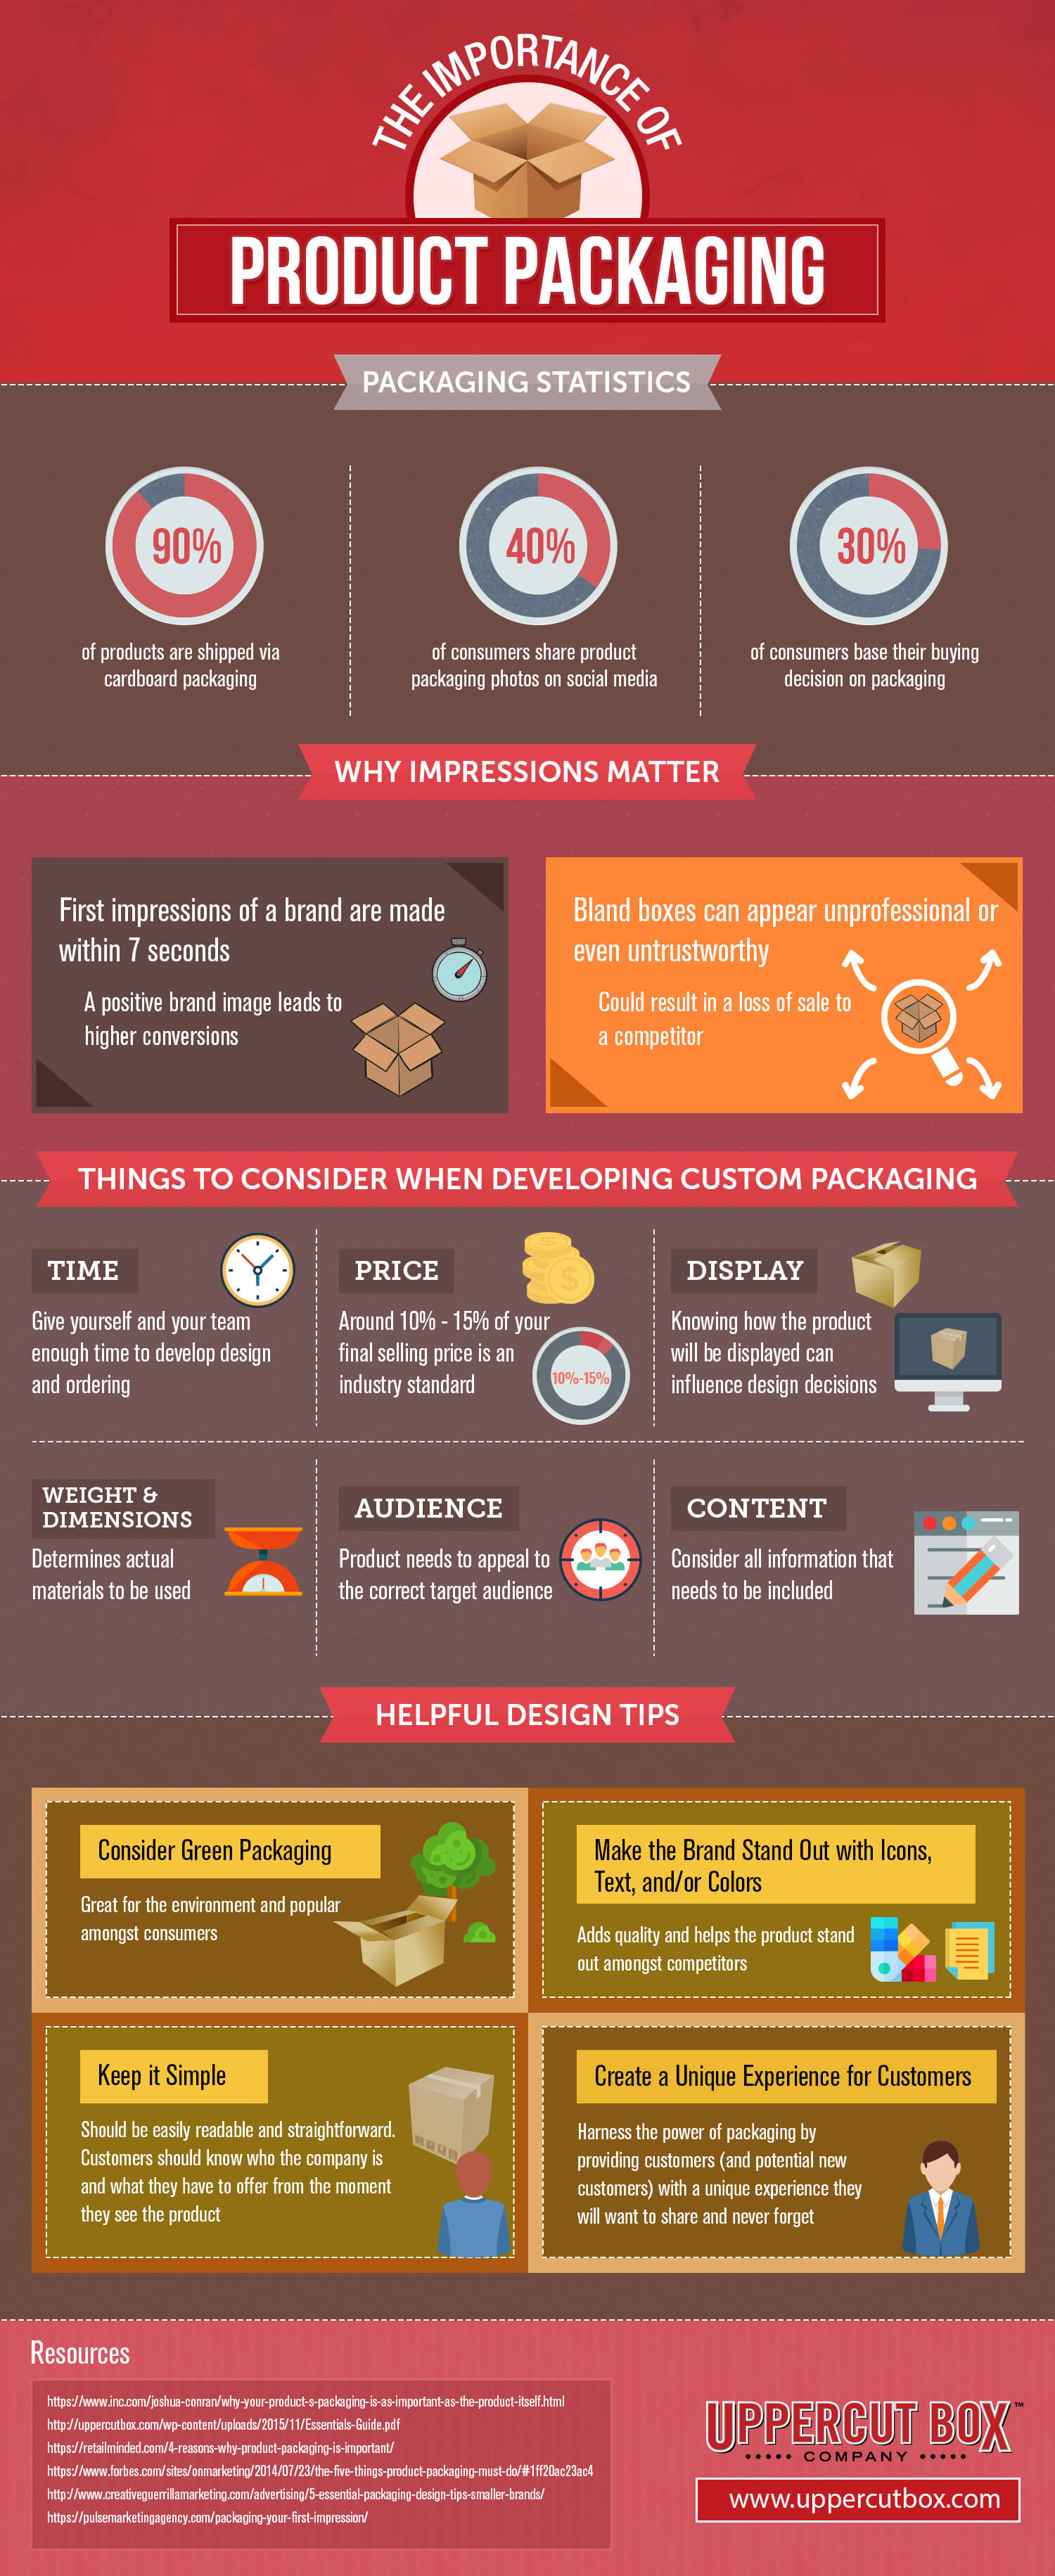 Product packaging infographic